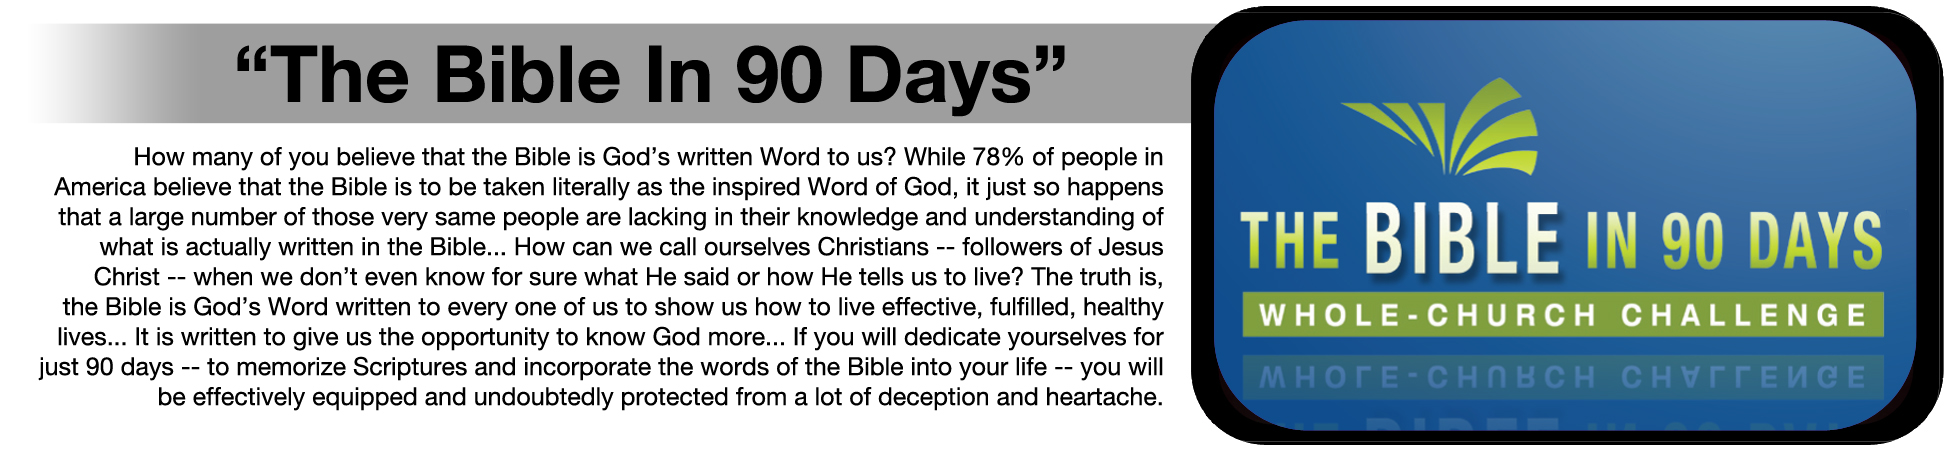 The Bible In 90 Days.jpg